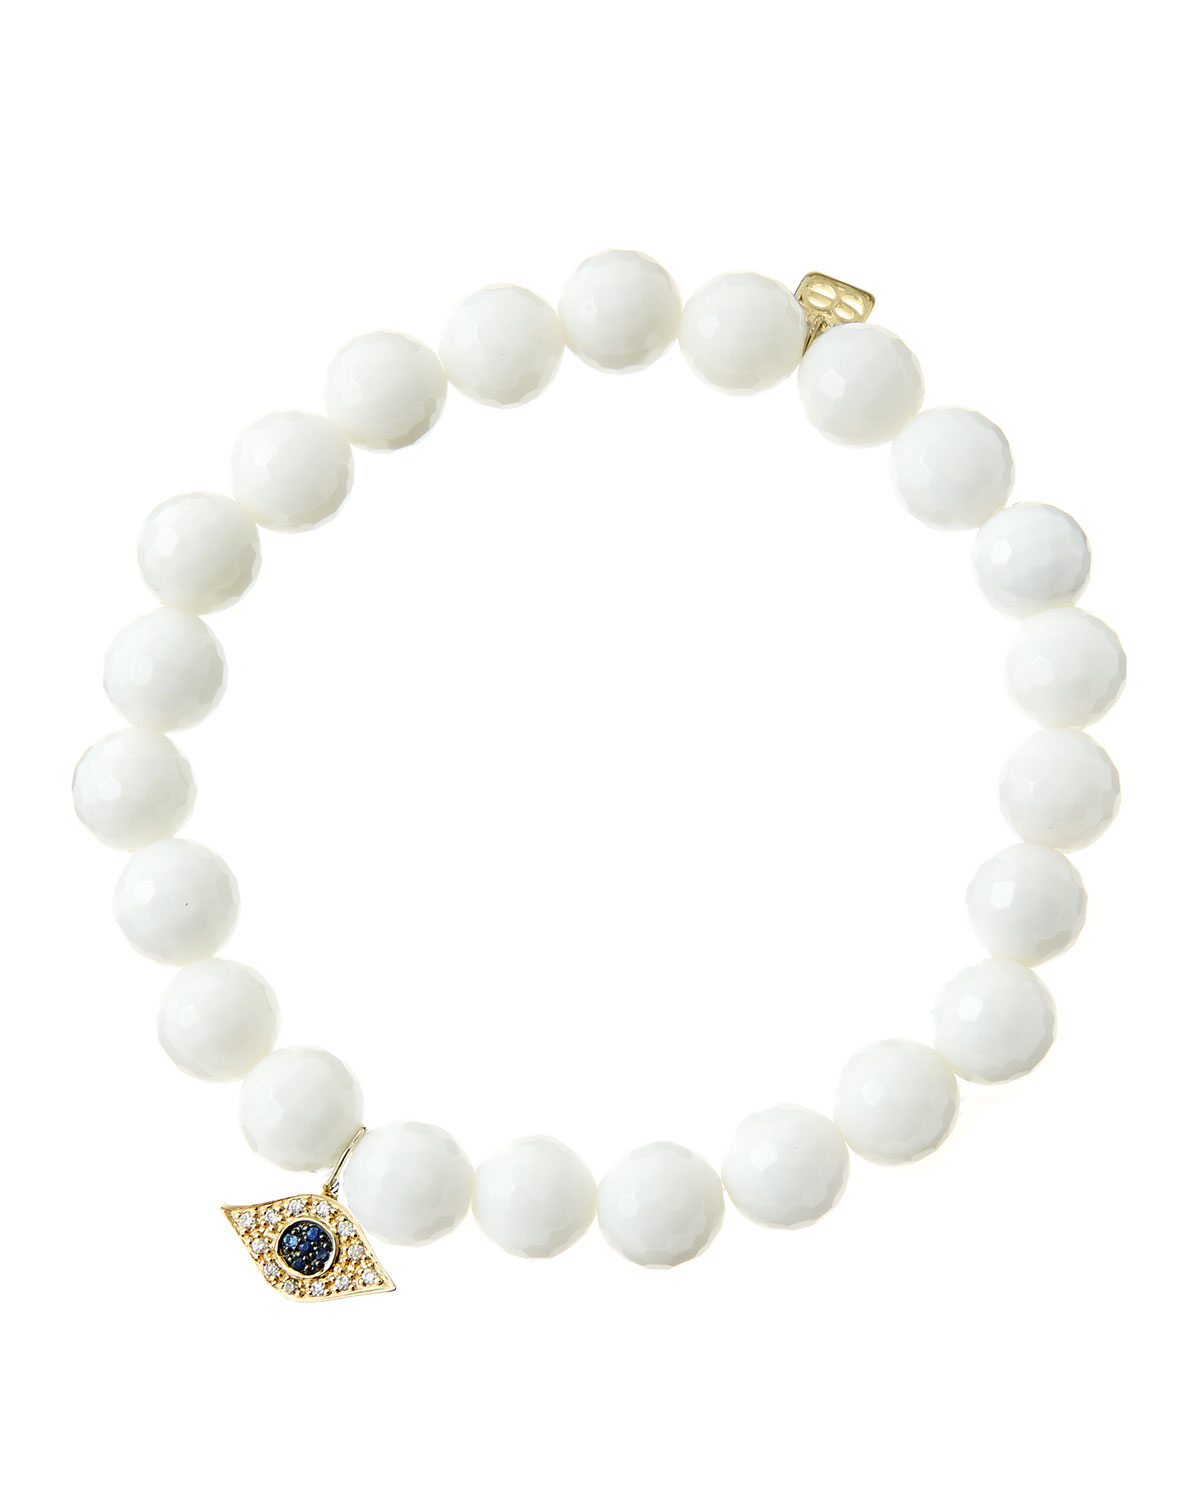 8mm Faceted White Agate Beaded Bracelet with 14k Yellow Gold/Diamond Small Evil